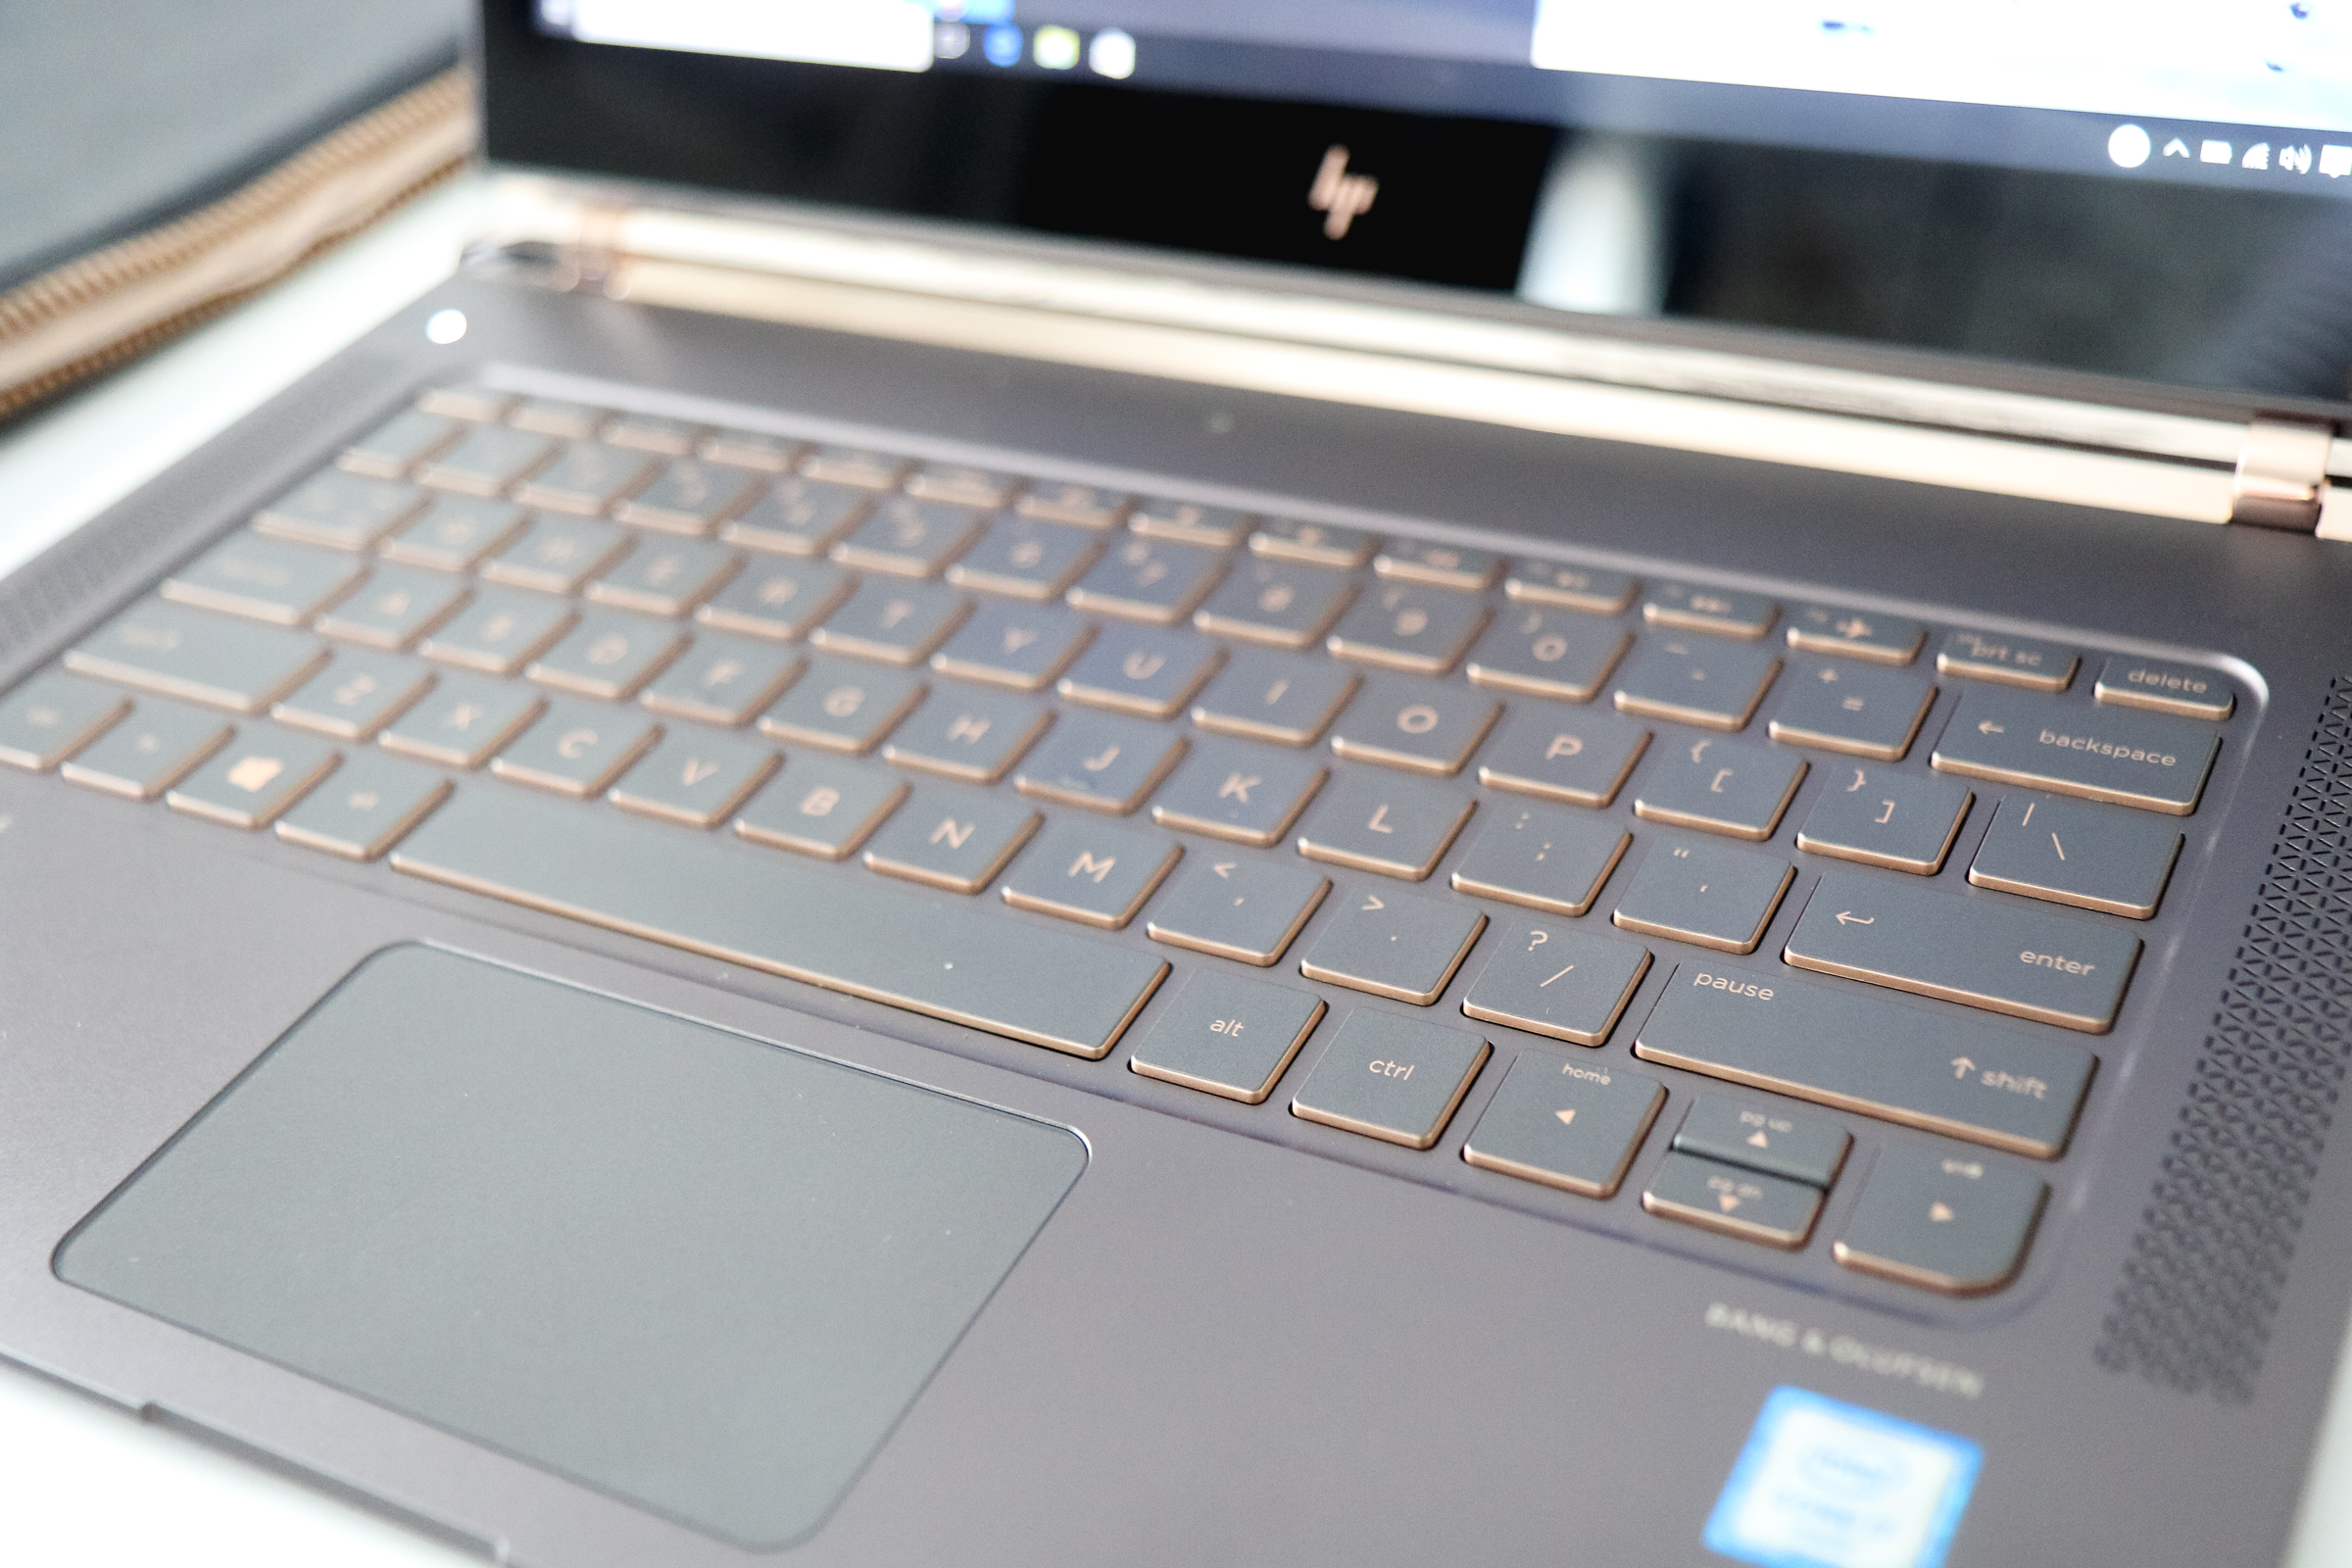 HP Spectre laptop details